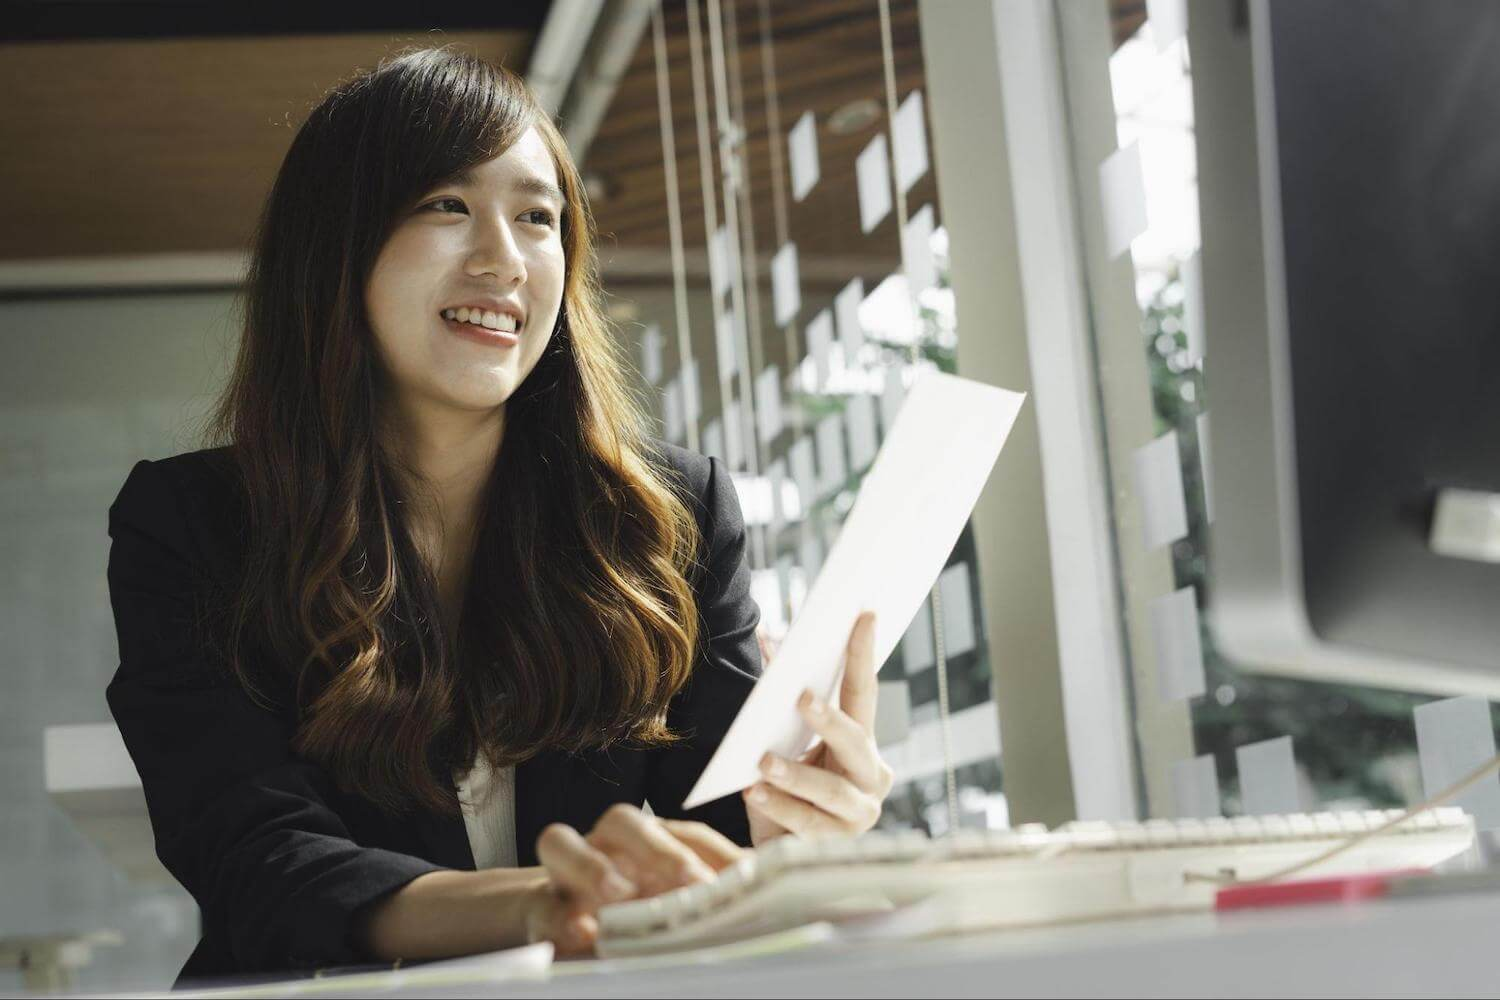 Do student loans affect credit score: A smiling woman holds a piece of paper while using a computer